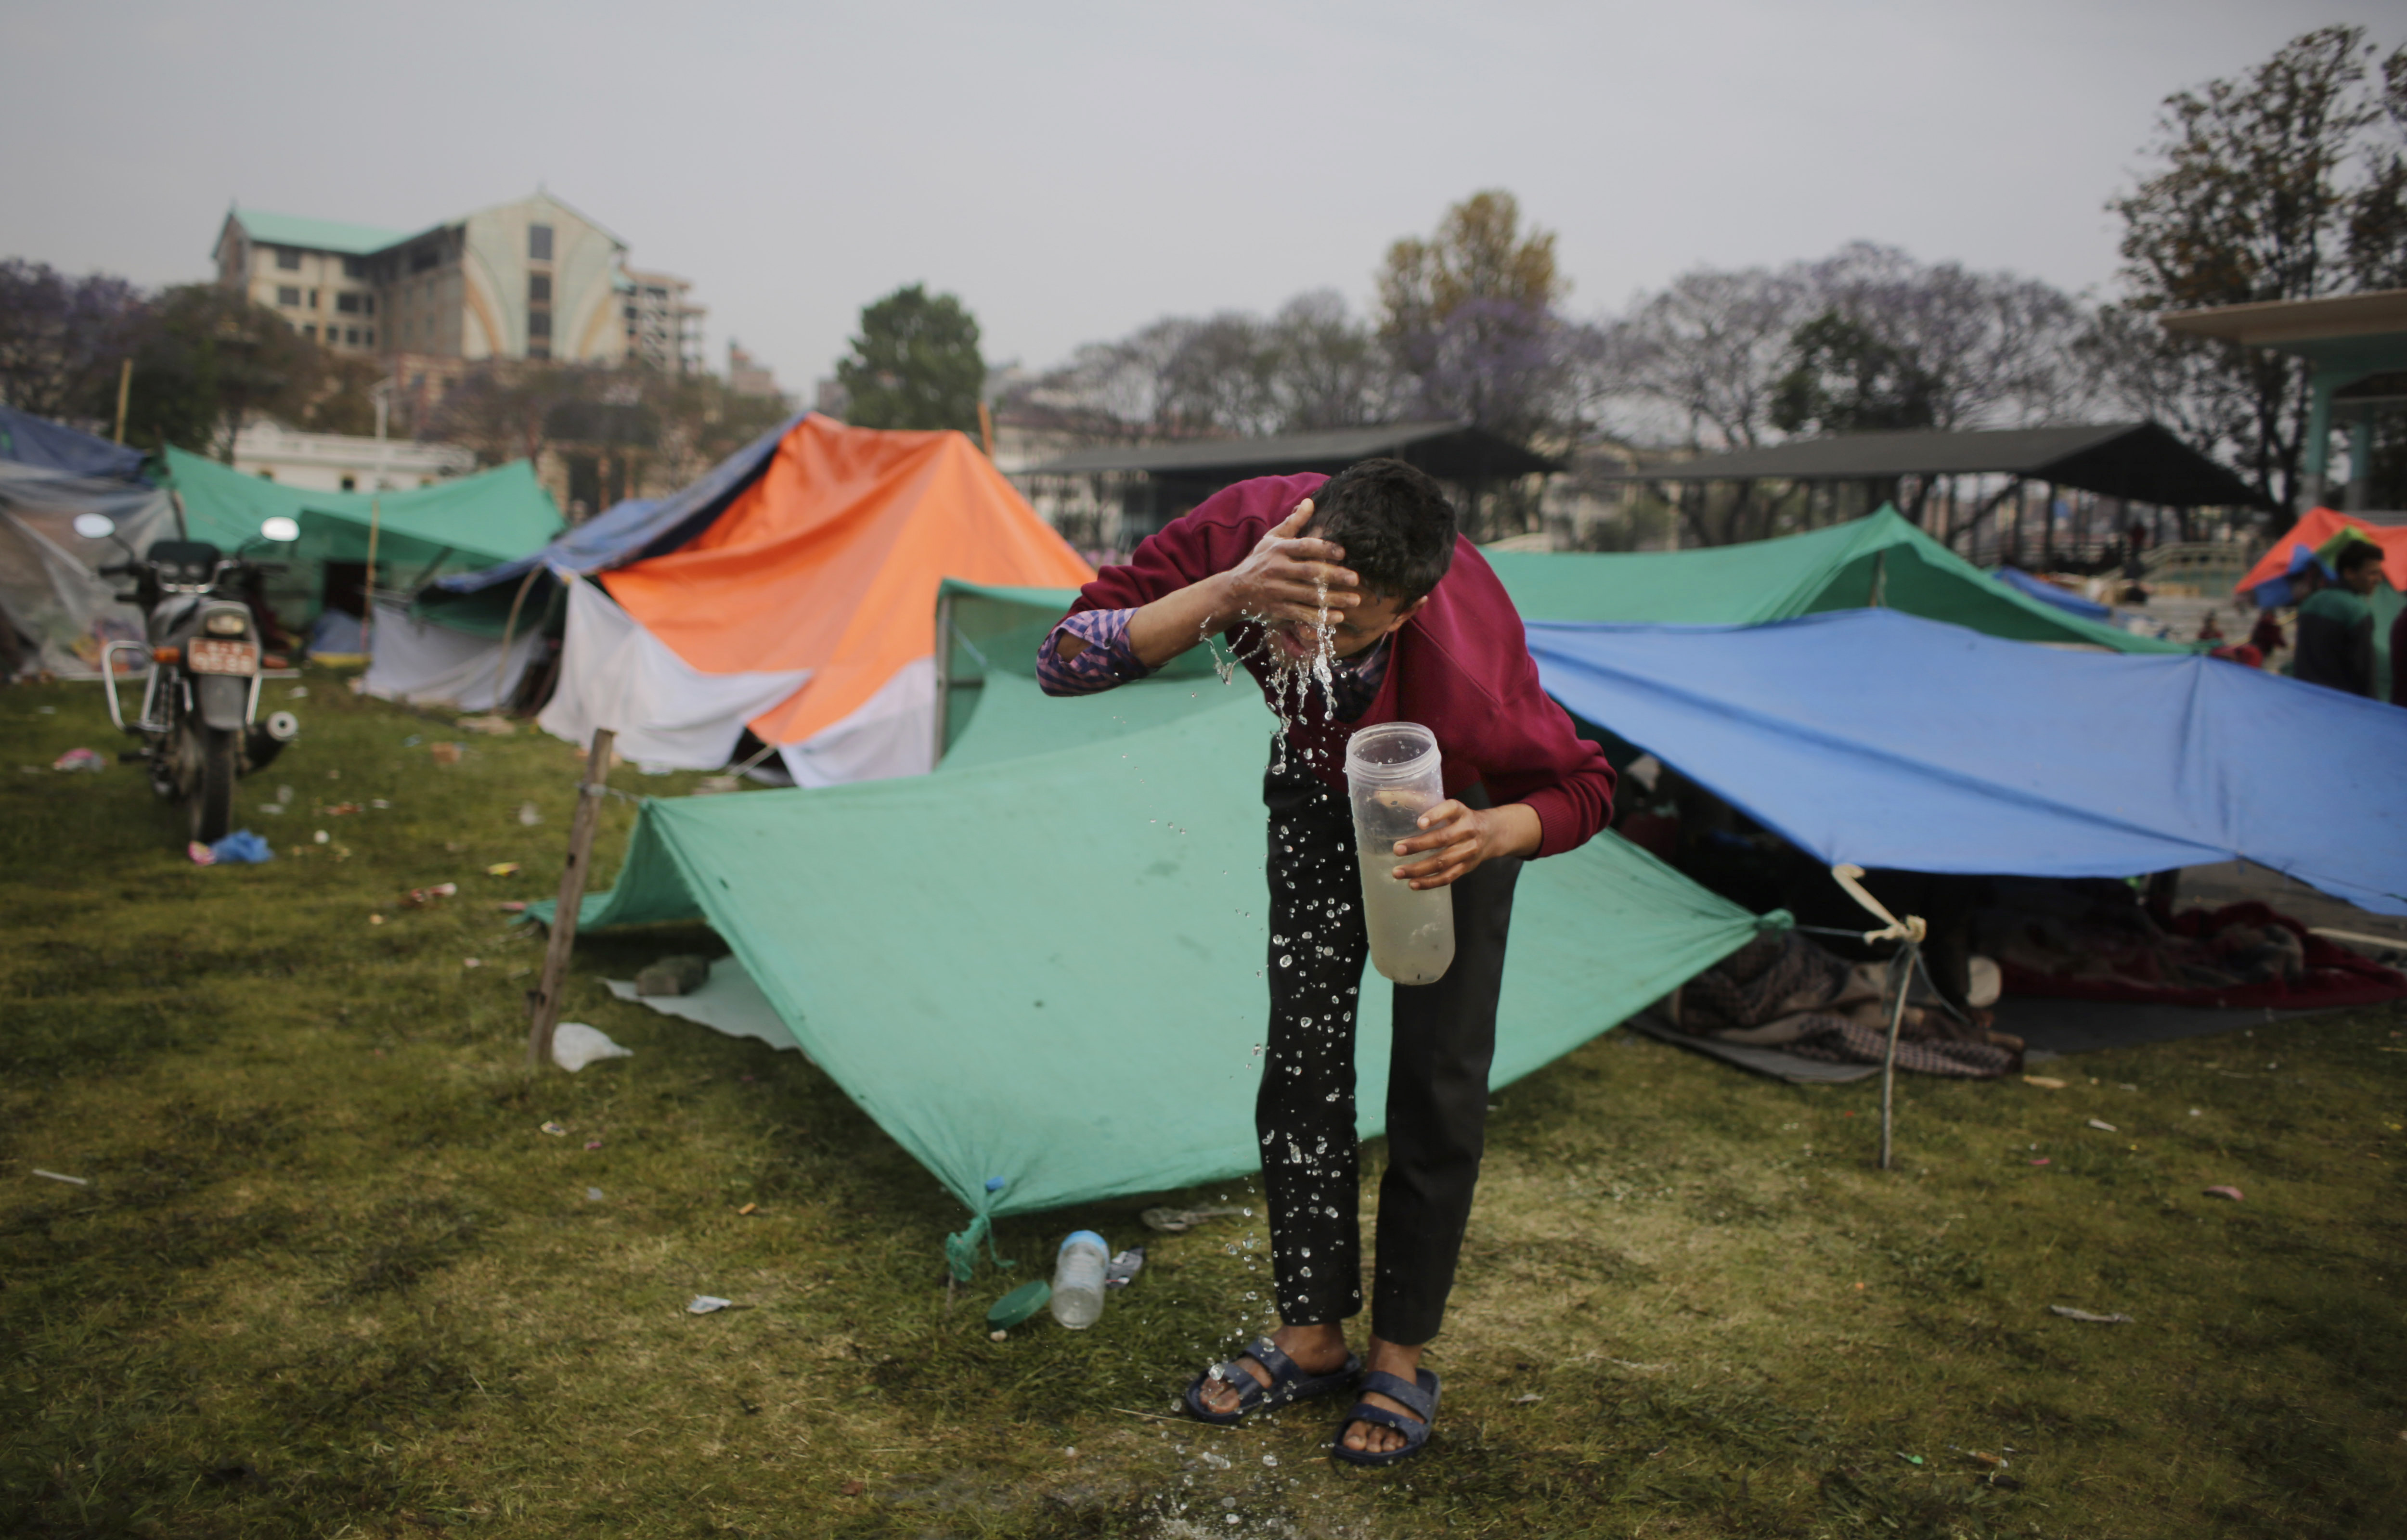 Survivor of Saturday's earthquake washes his face after spending night in an open ground from fears of earthquake tremors in Kathmandu, Nepal, Tuesday, April 28, 2015